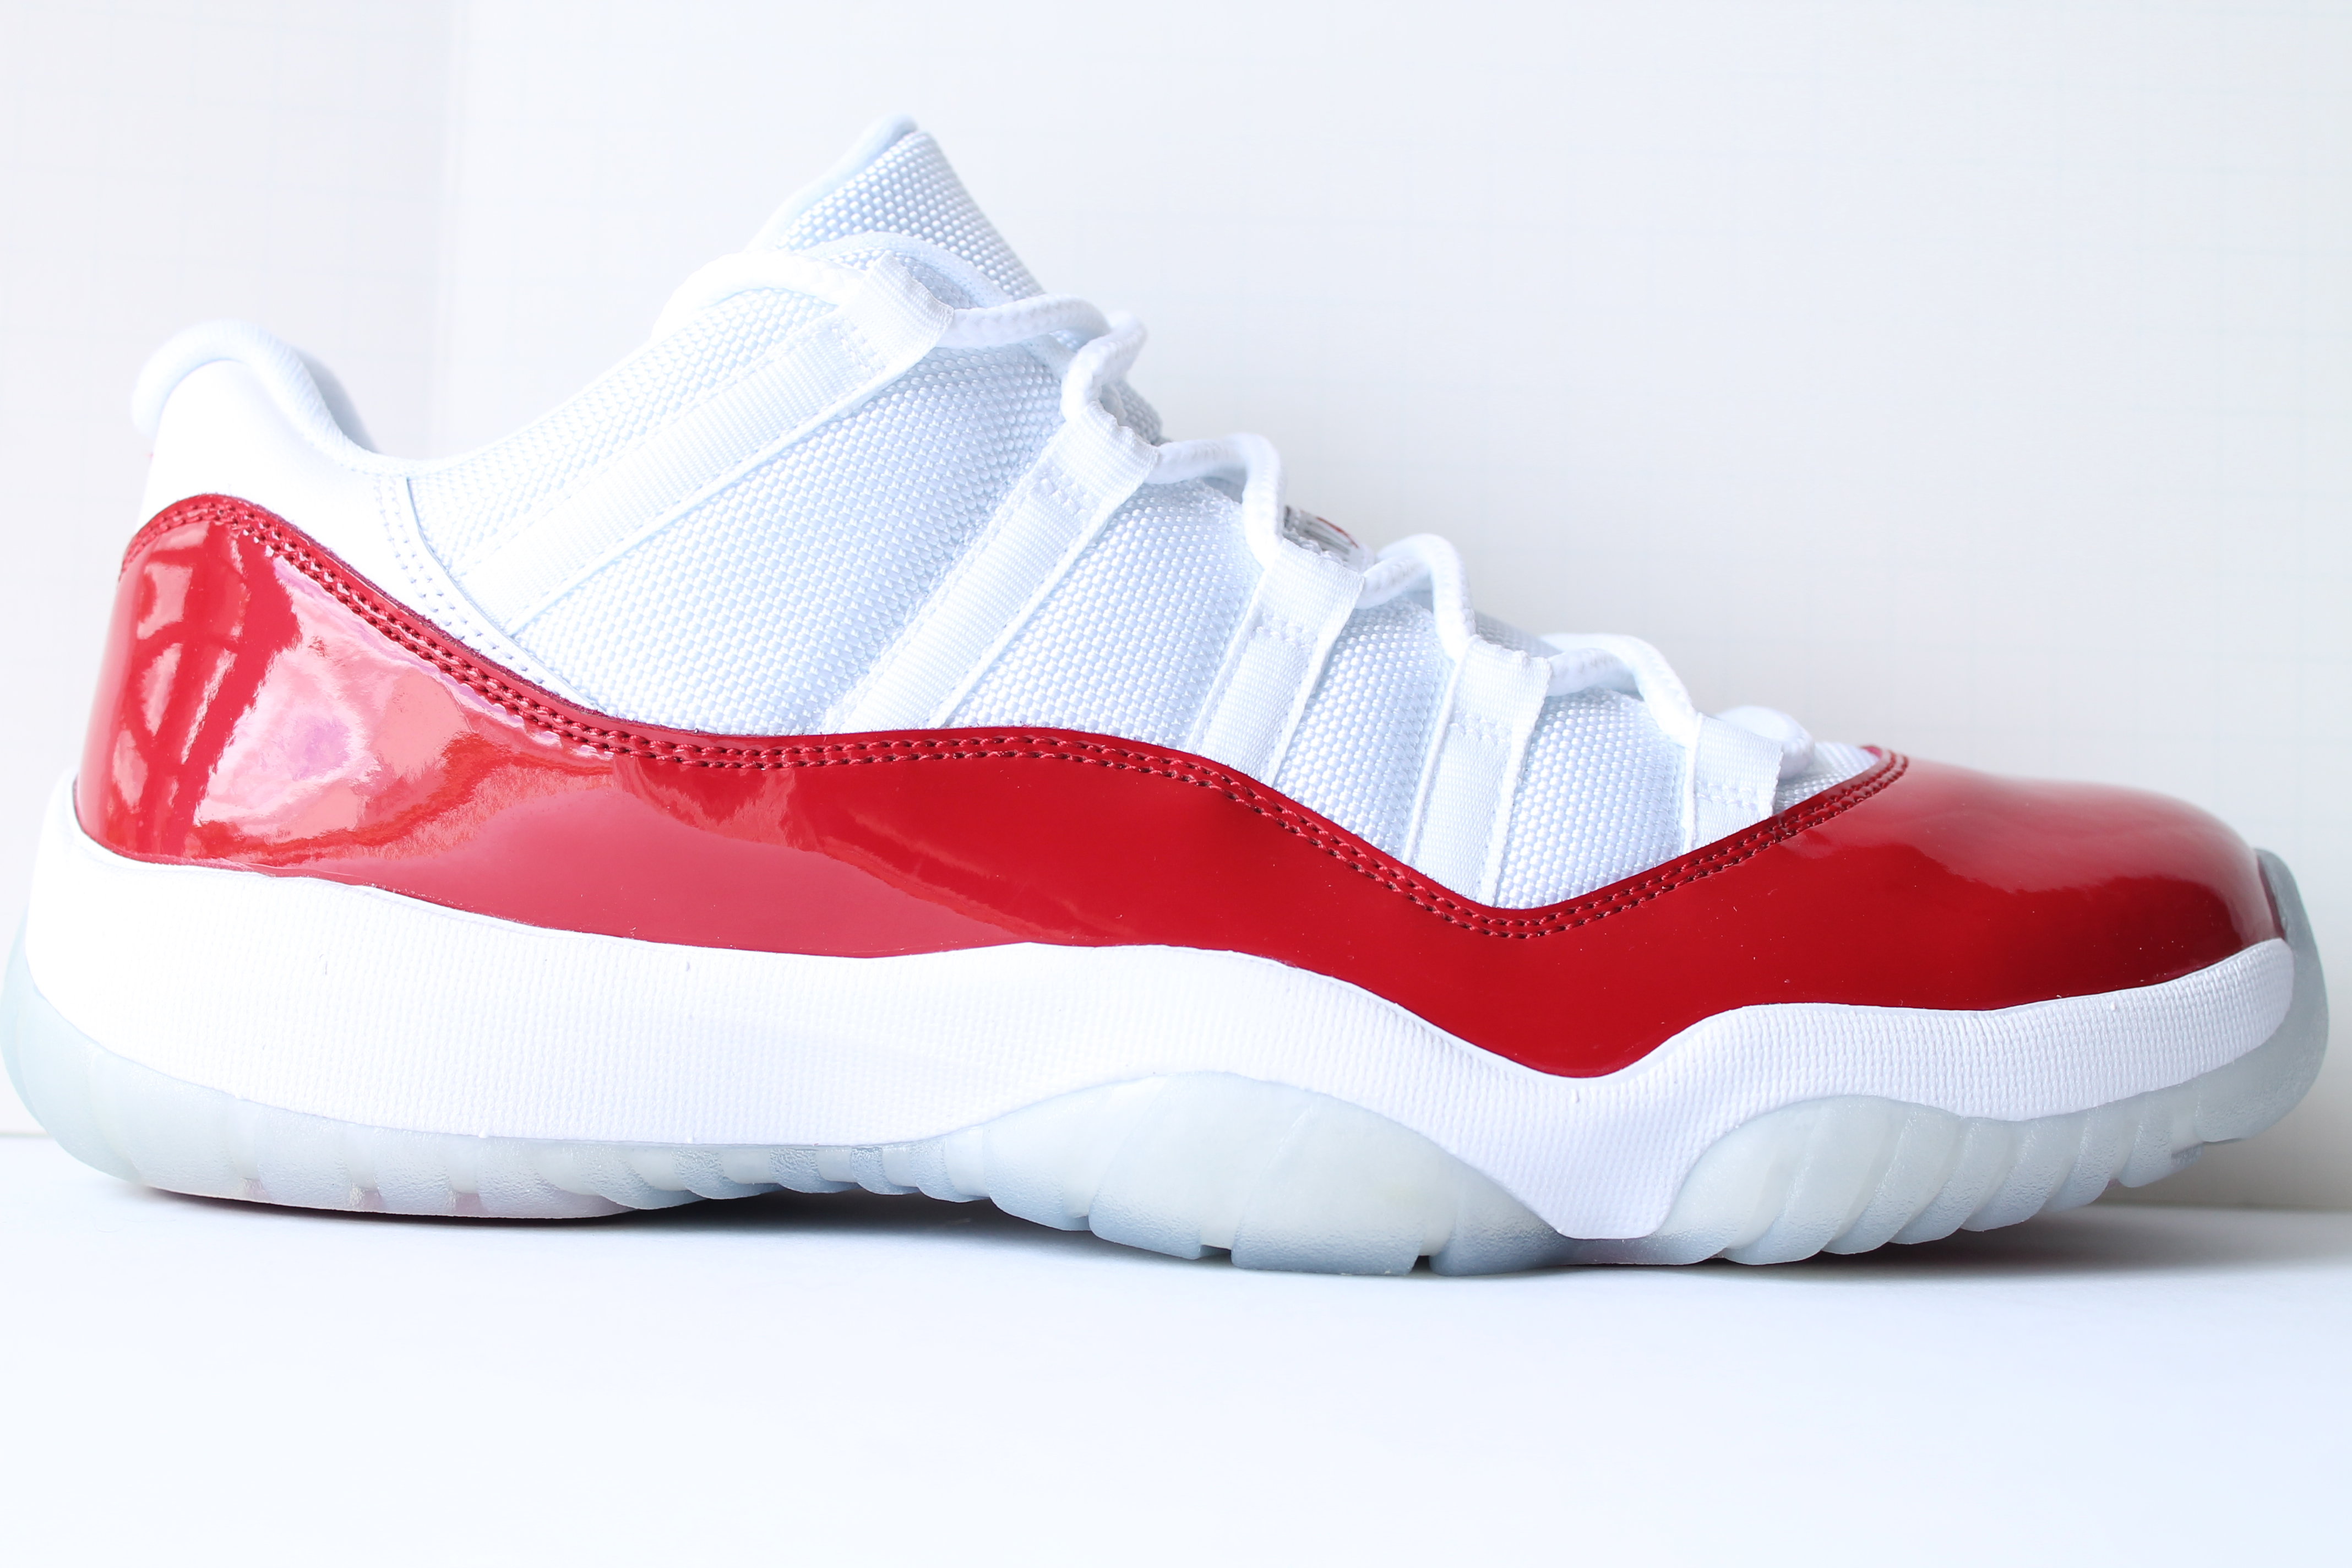 Air Jordan 11 Retro Low Cherry